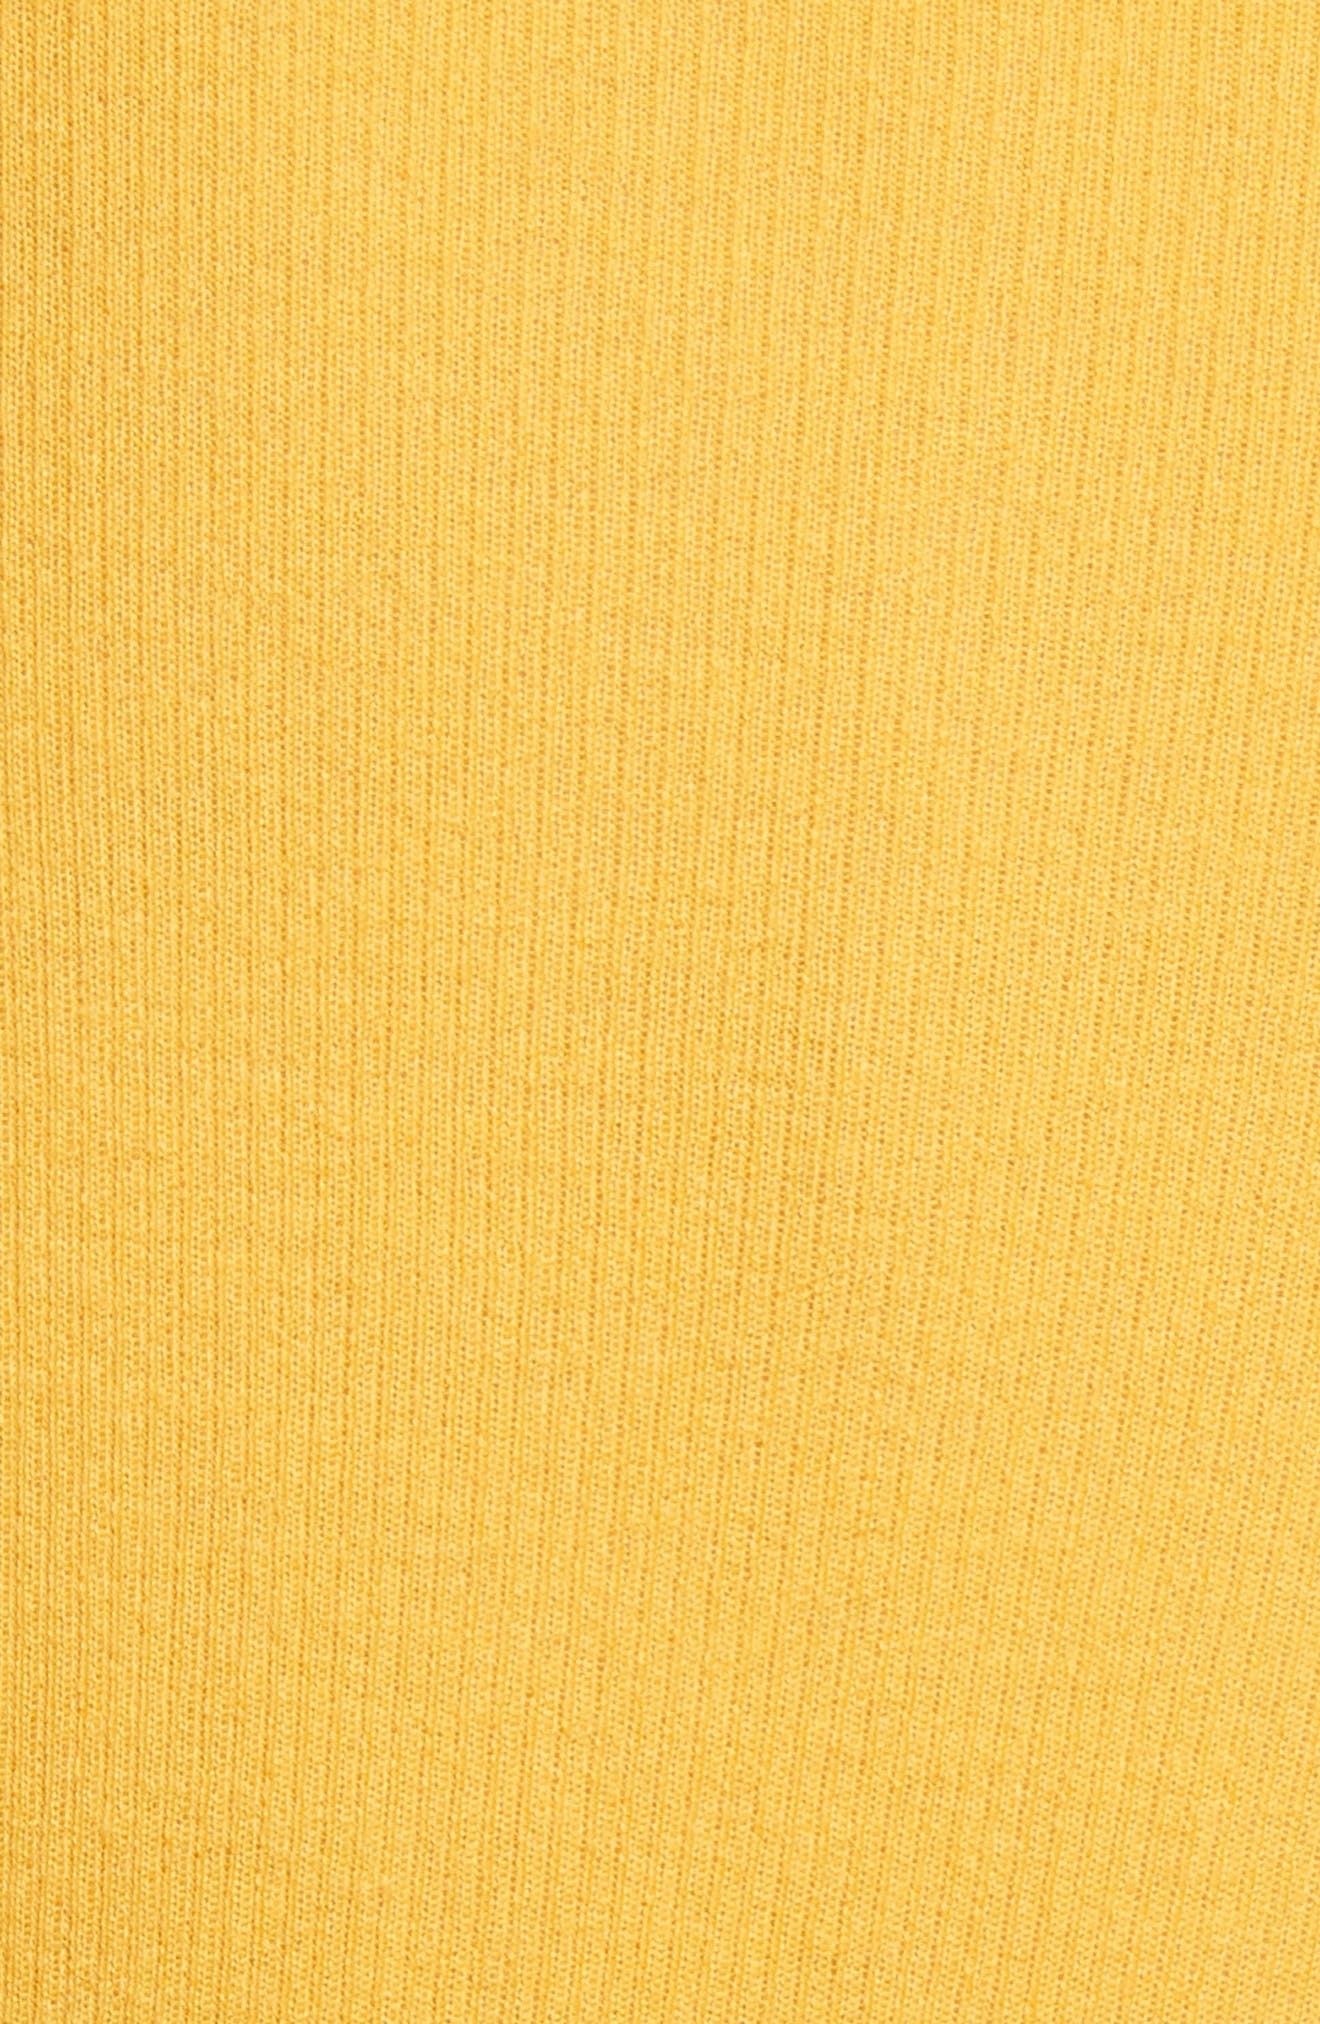 Cashmere Crewneck Sweater,                             Alternate thumbnail 5, color,                             Lemon